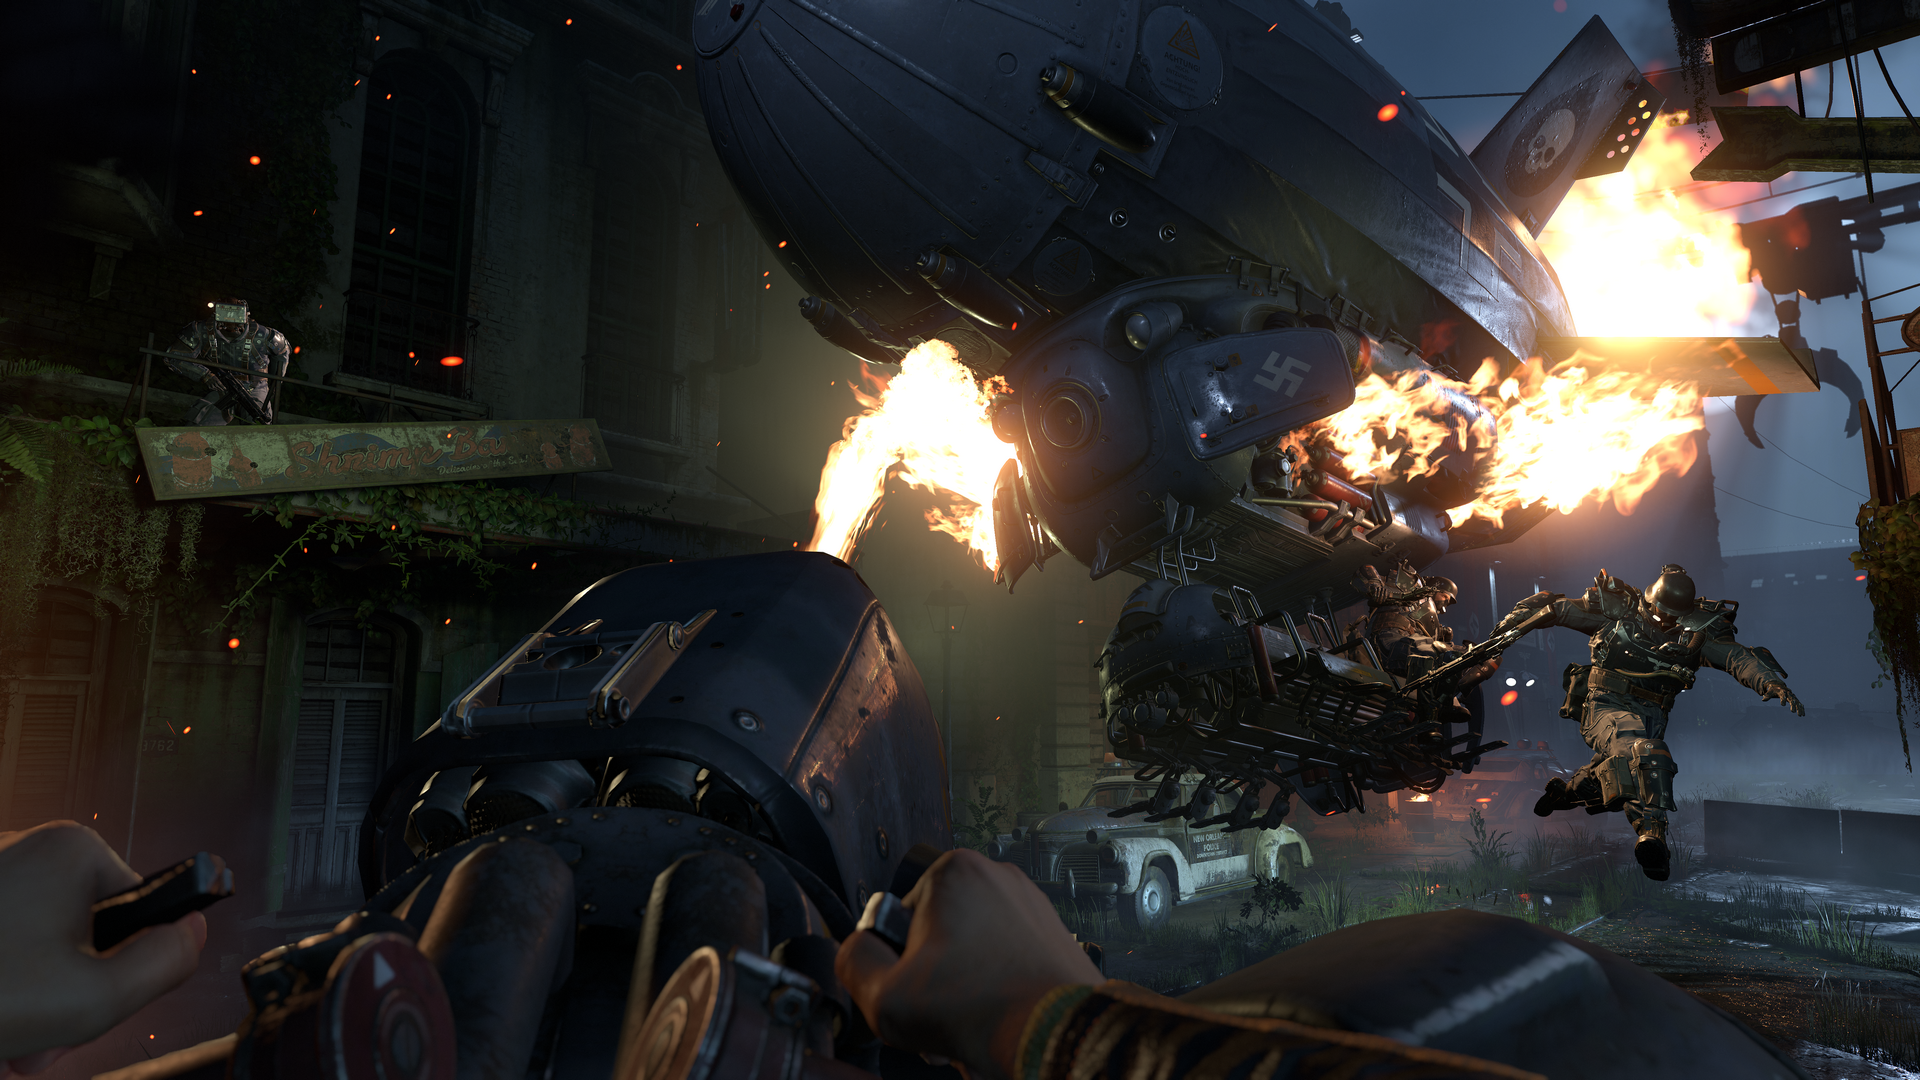 wolfenstein_2_screenshot_1